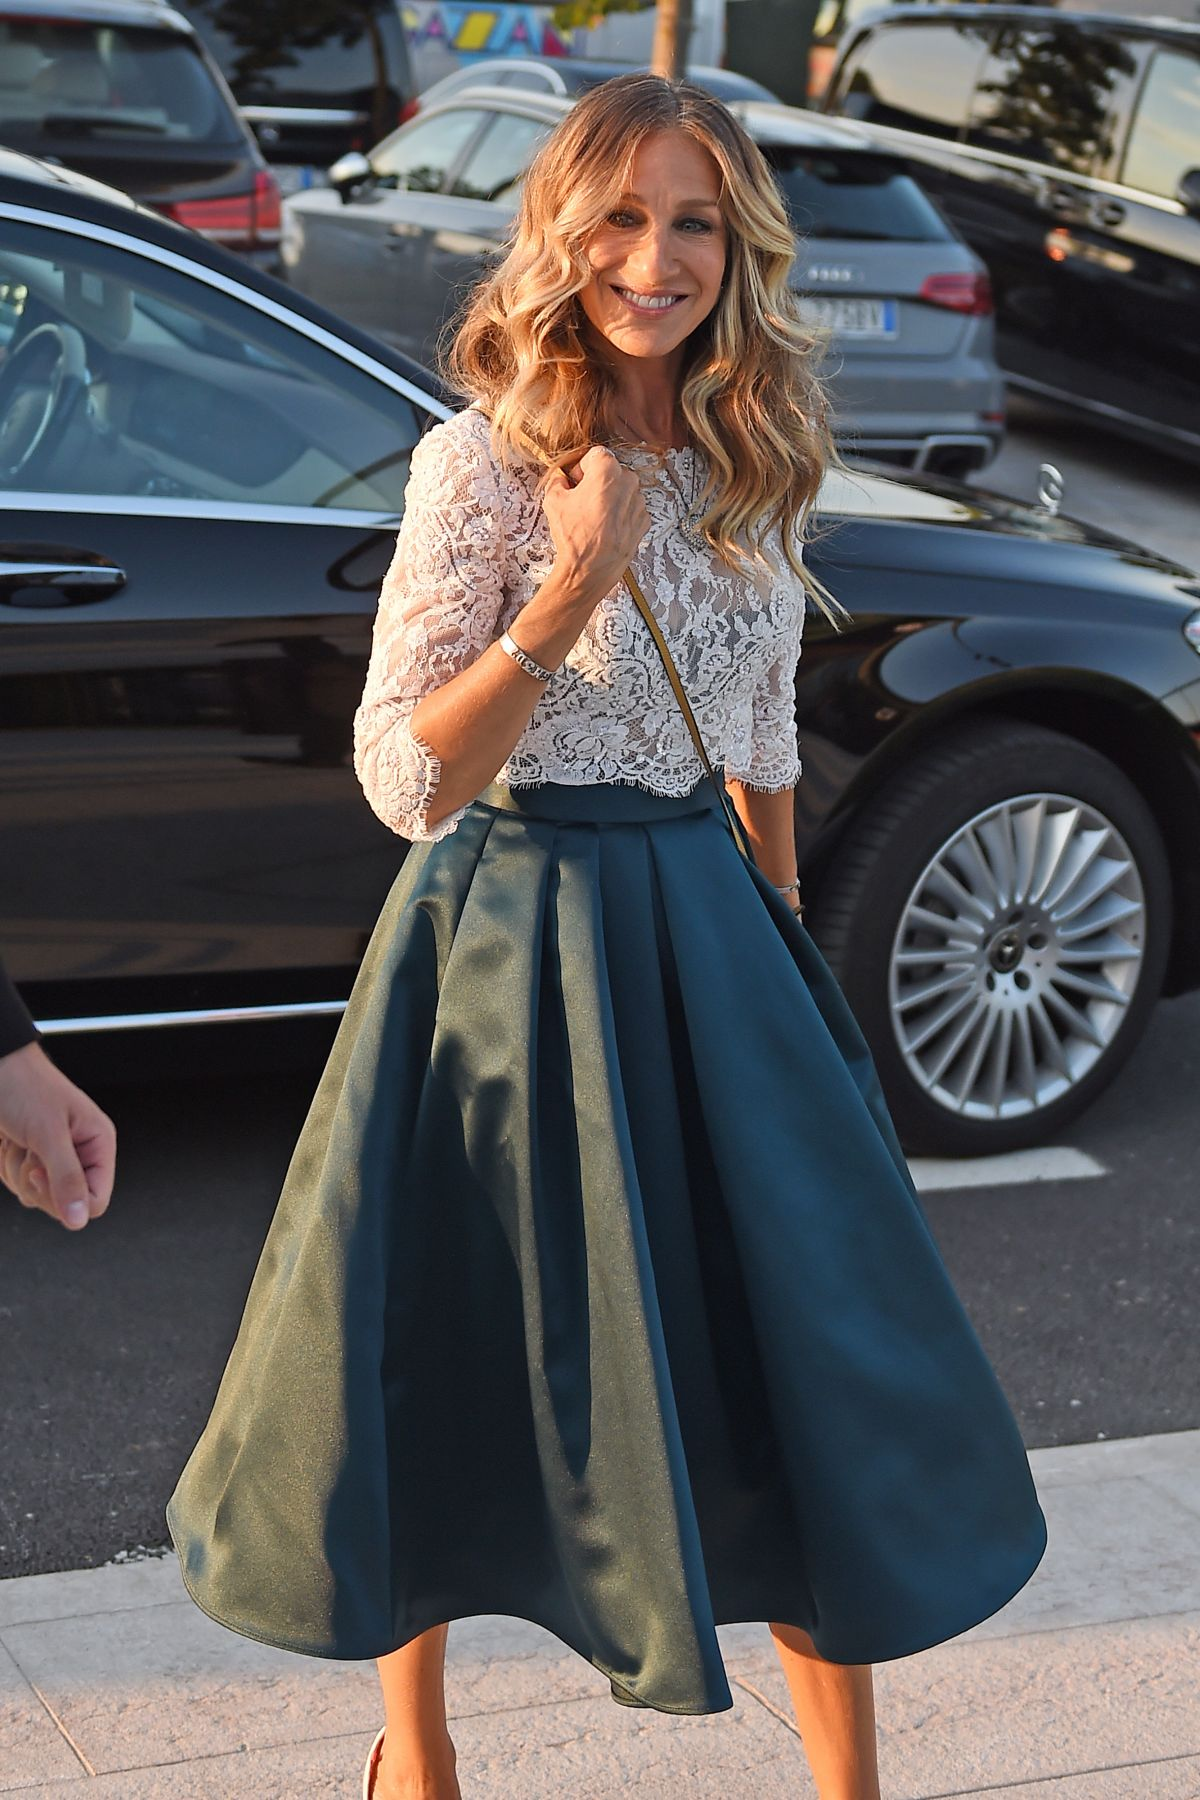 Sarah Jessica Parker Wears Ruffles, Satin, and Lace for